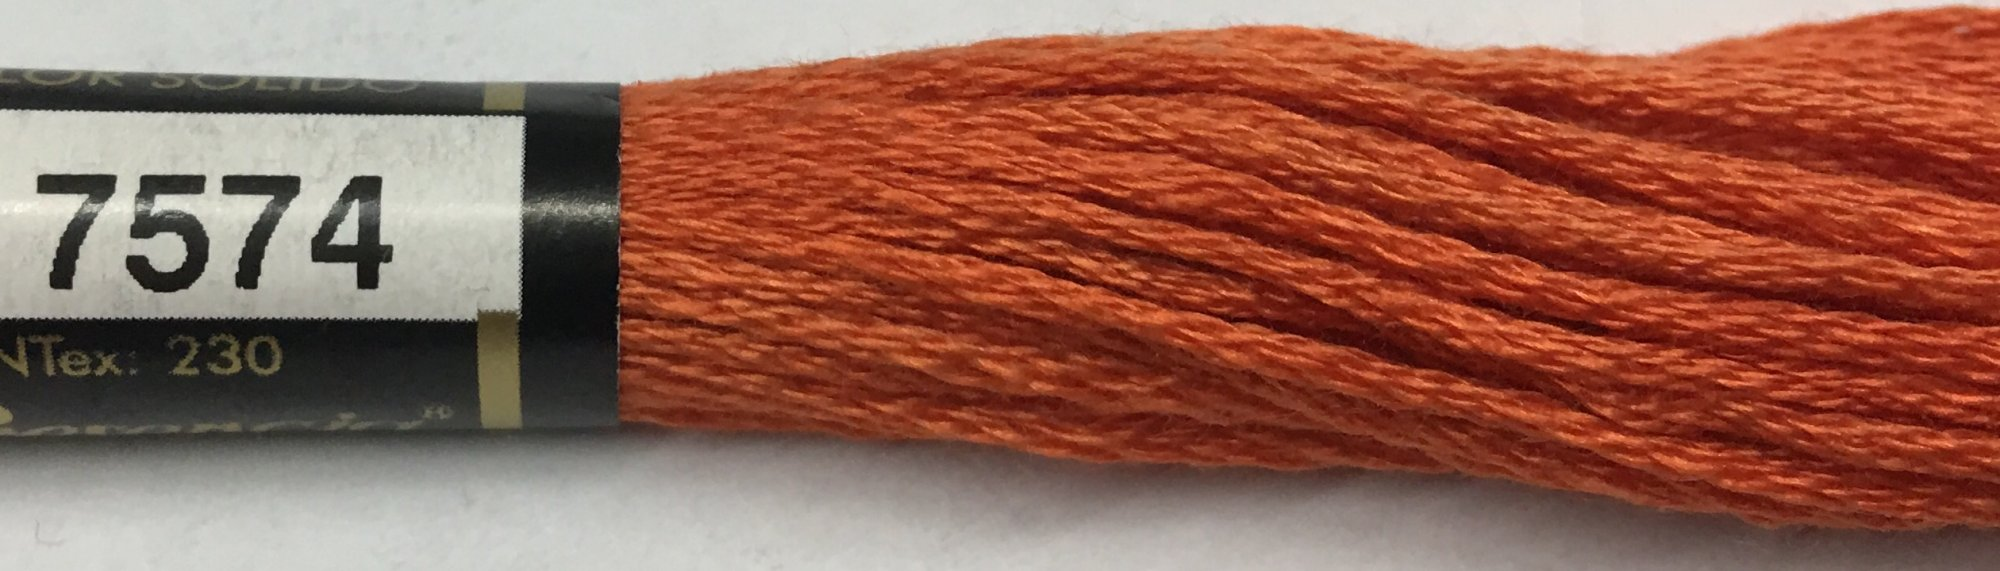 F7574 Presencia 100% Mercerized Finca Cotton 6 ply Embroidery Floss 8 meter skein